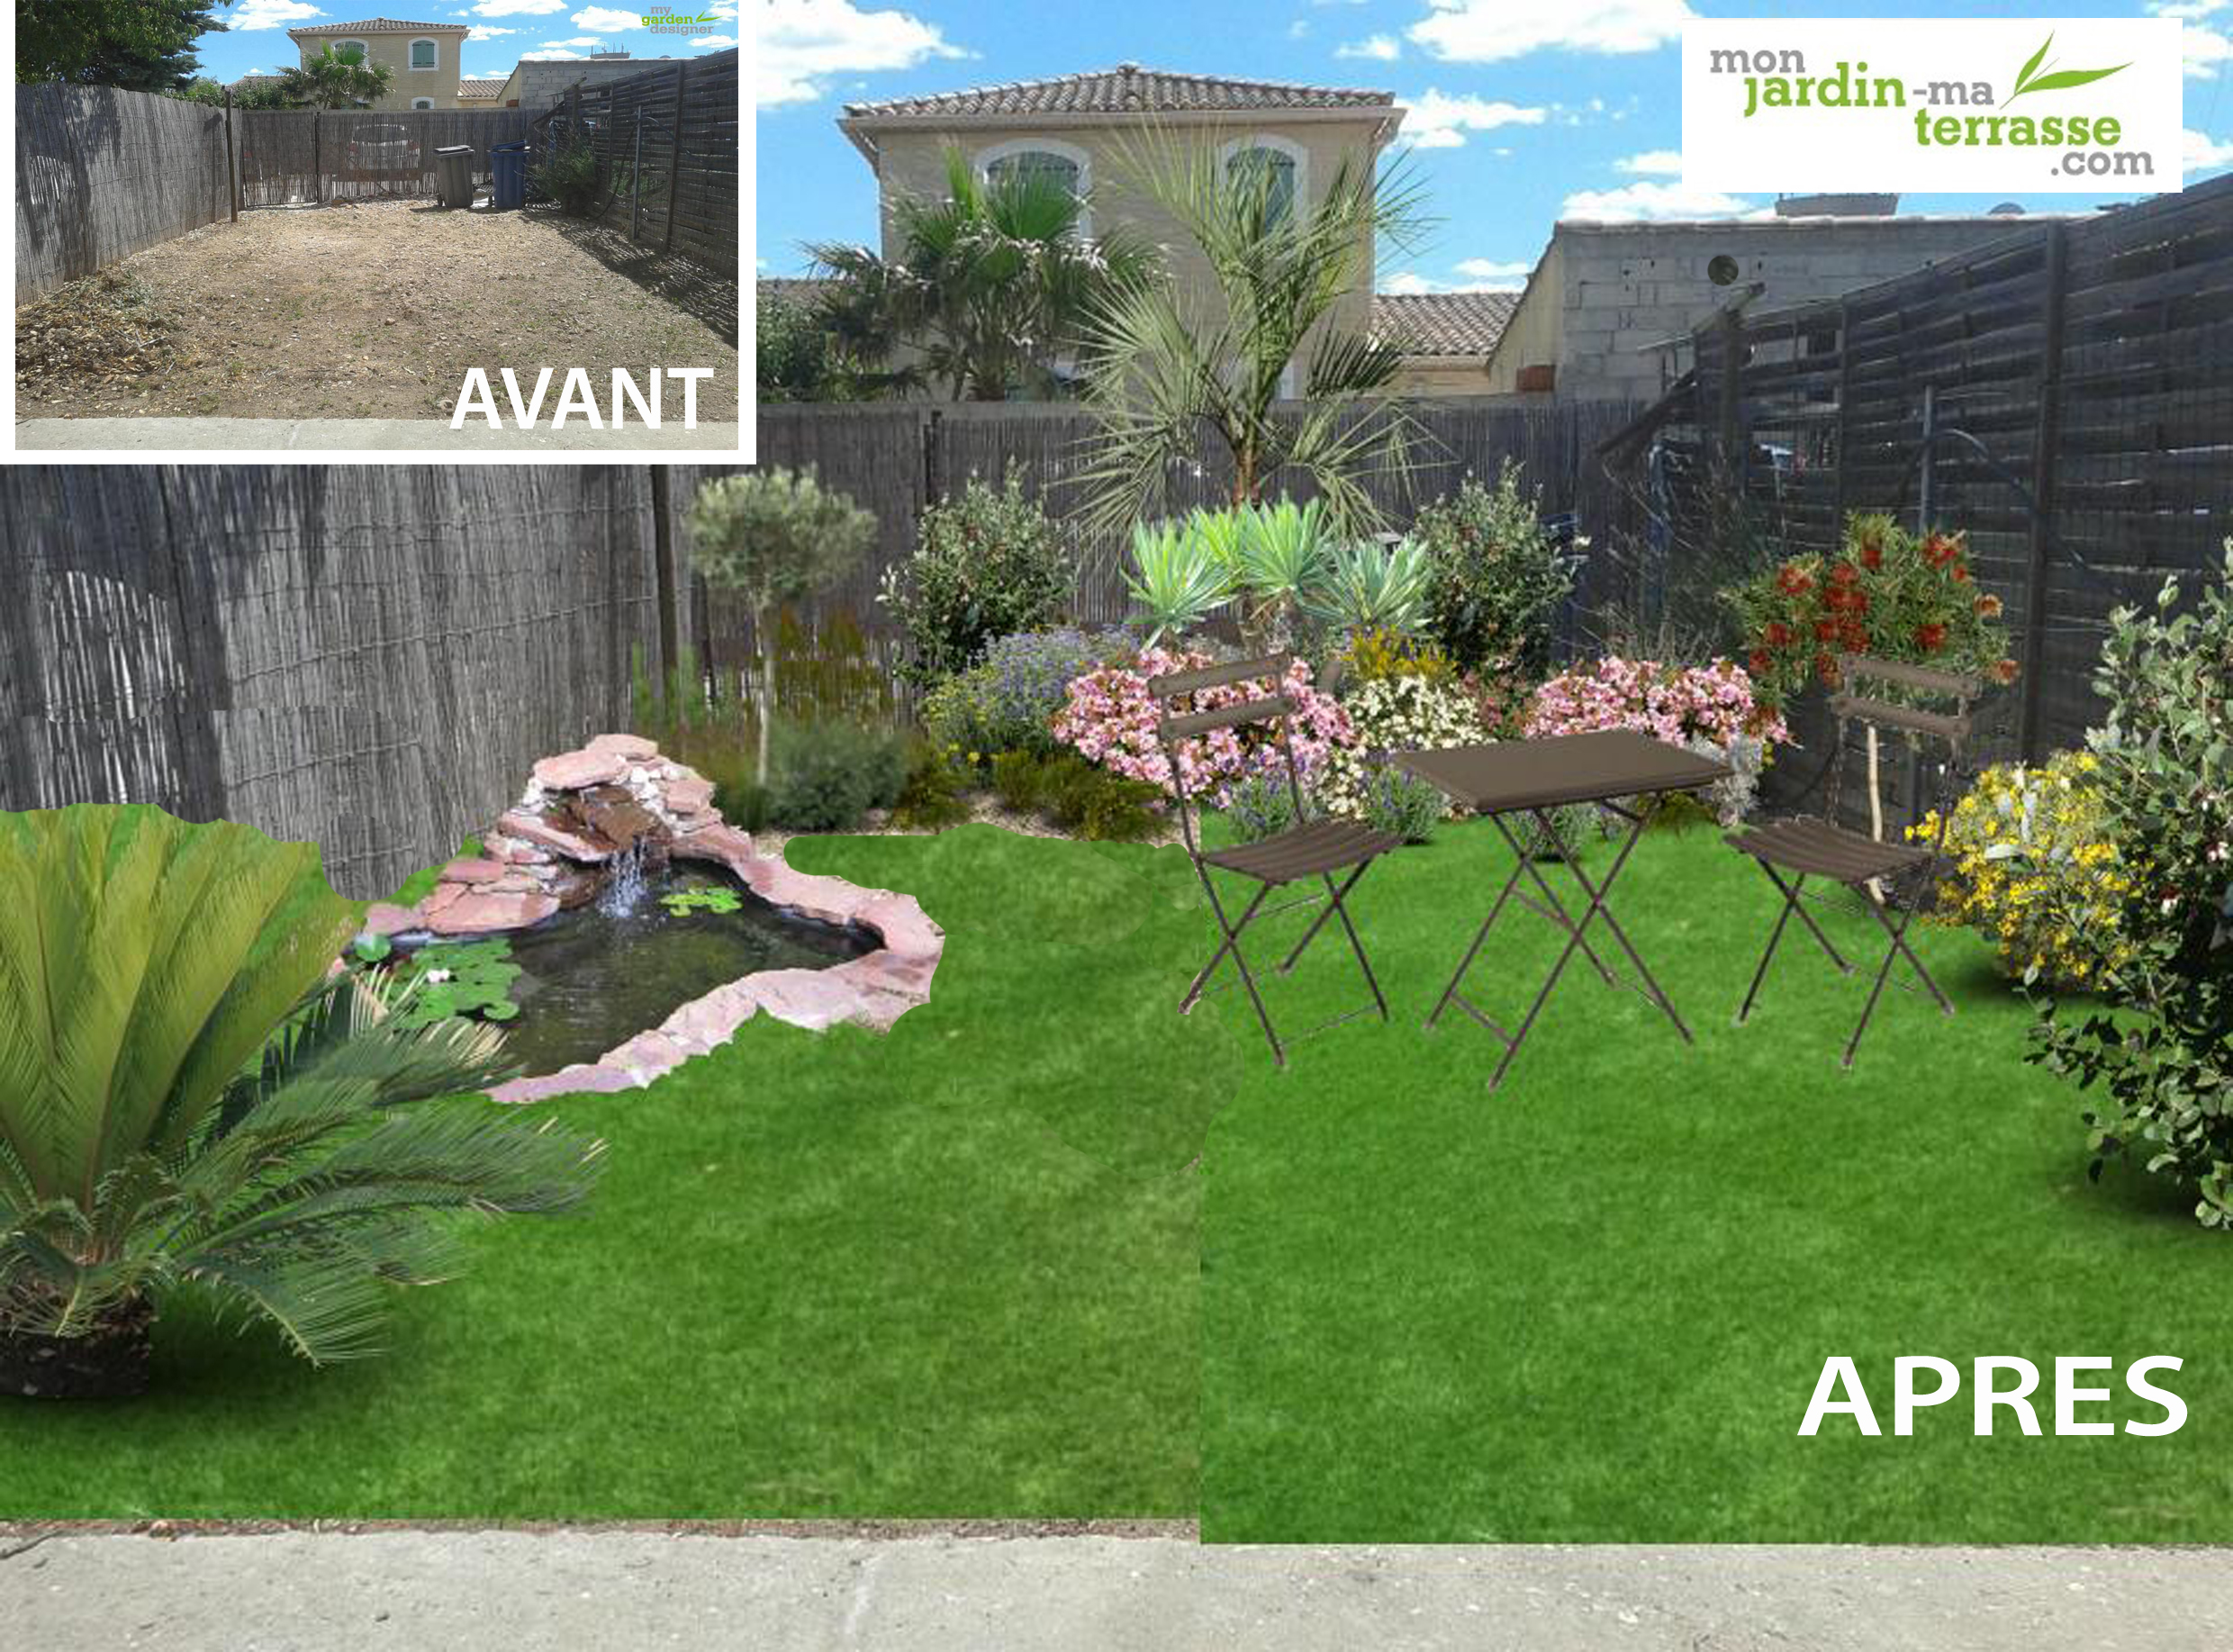 Id e d am nagement d un petit jardin monjardin for Idee amenagement terrasse jardin